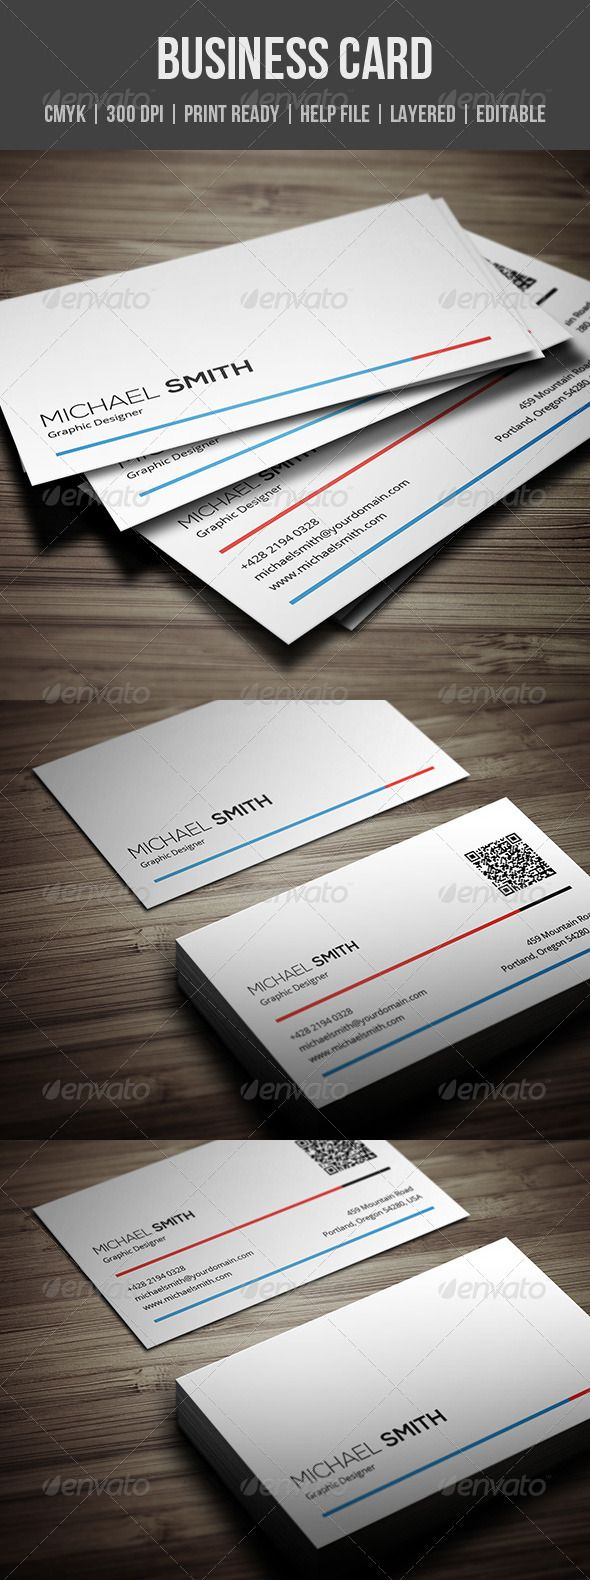 28 best Business Cards images on Pinterest | Business card design ...